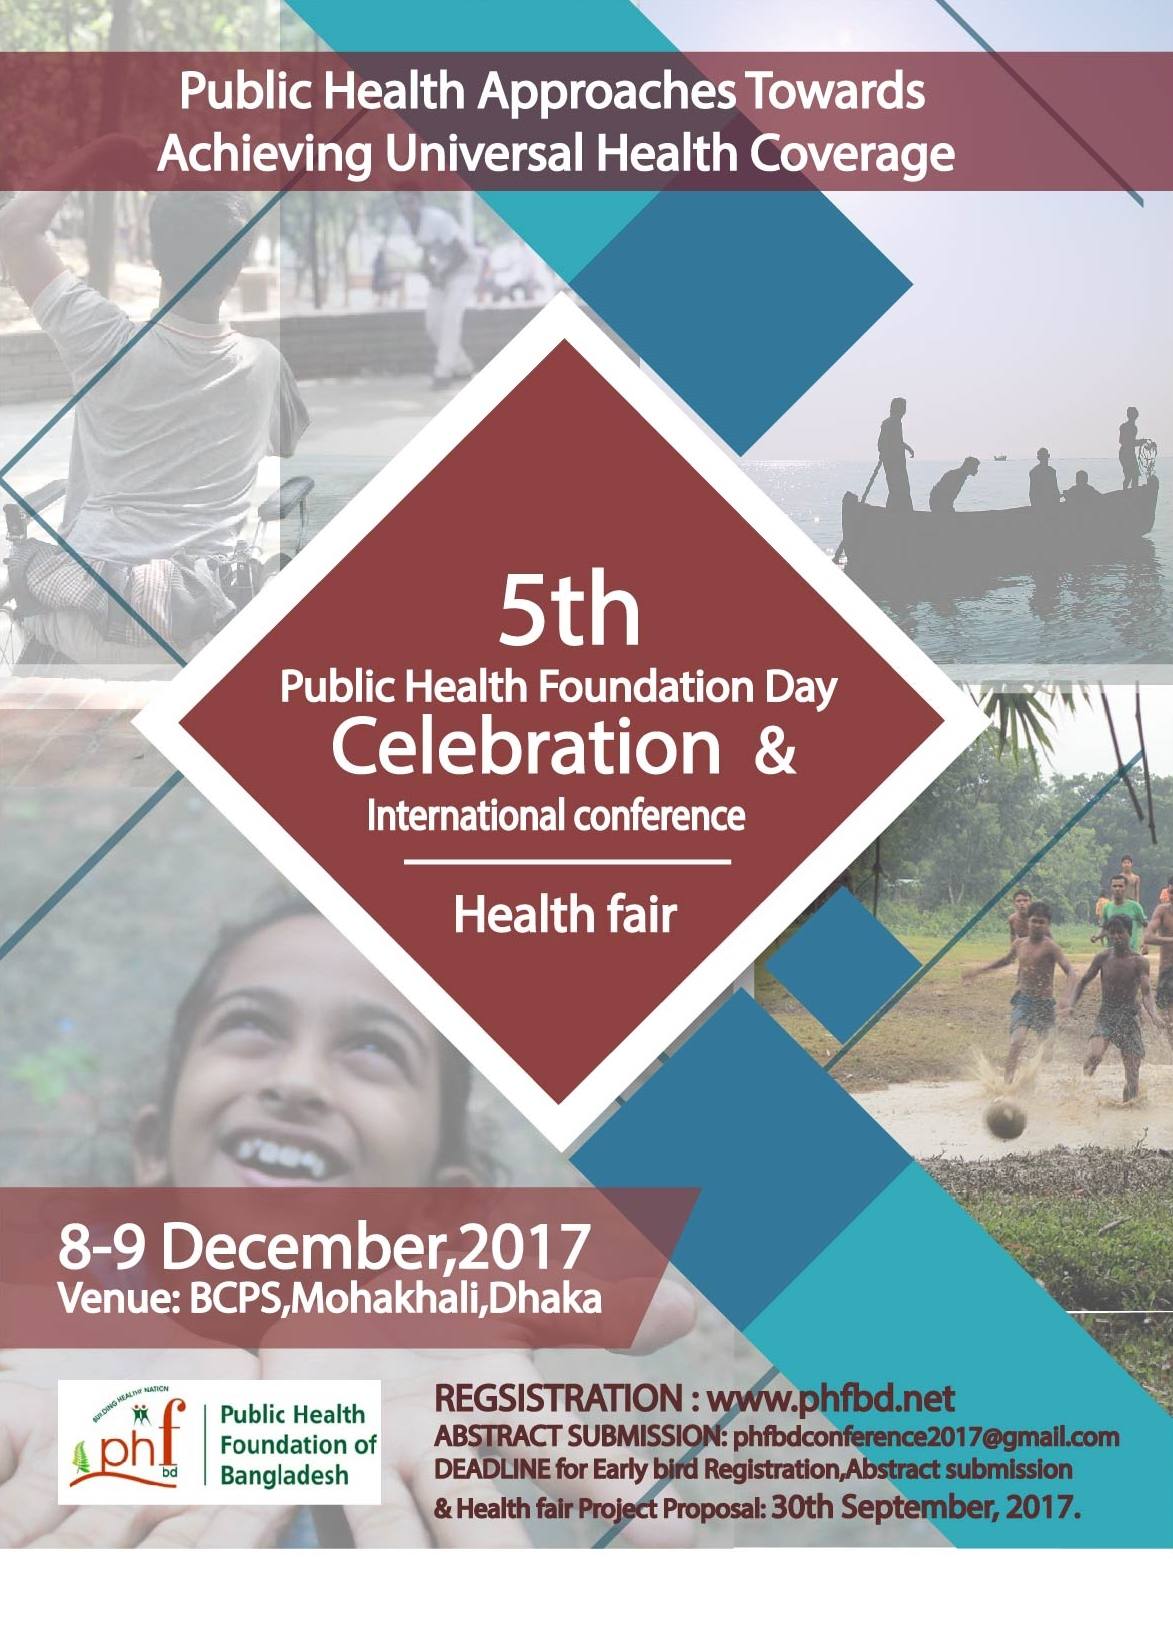 Public Health Foundation Day Celebration & International Conference